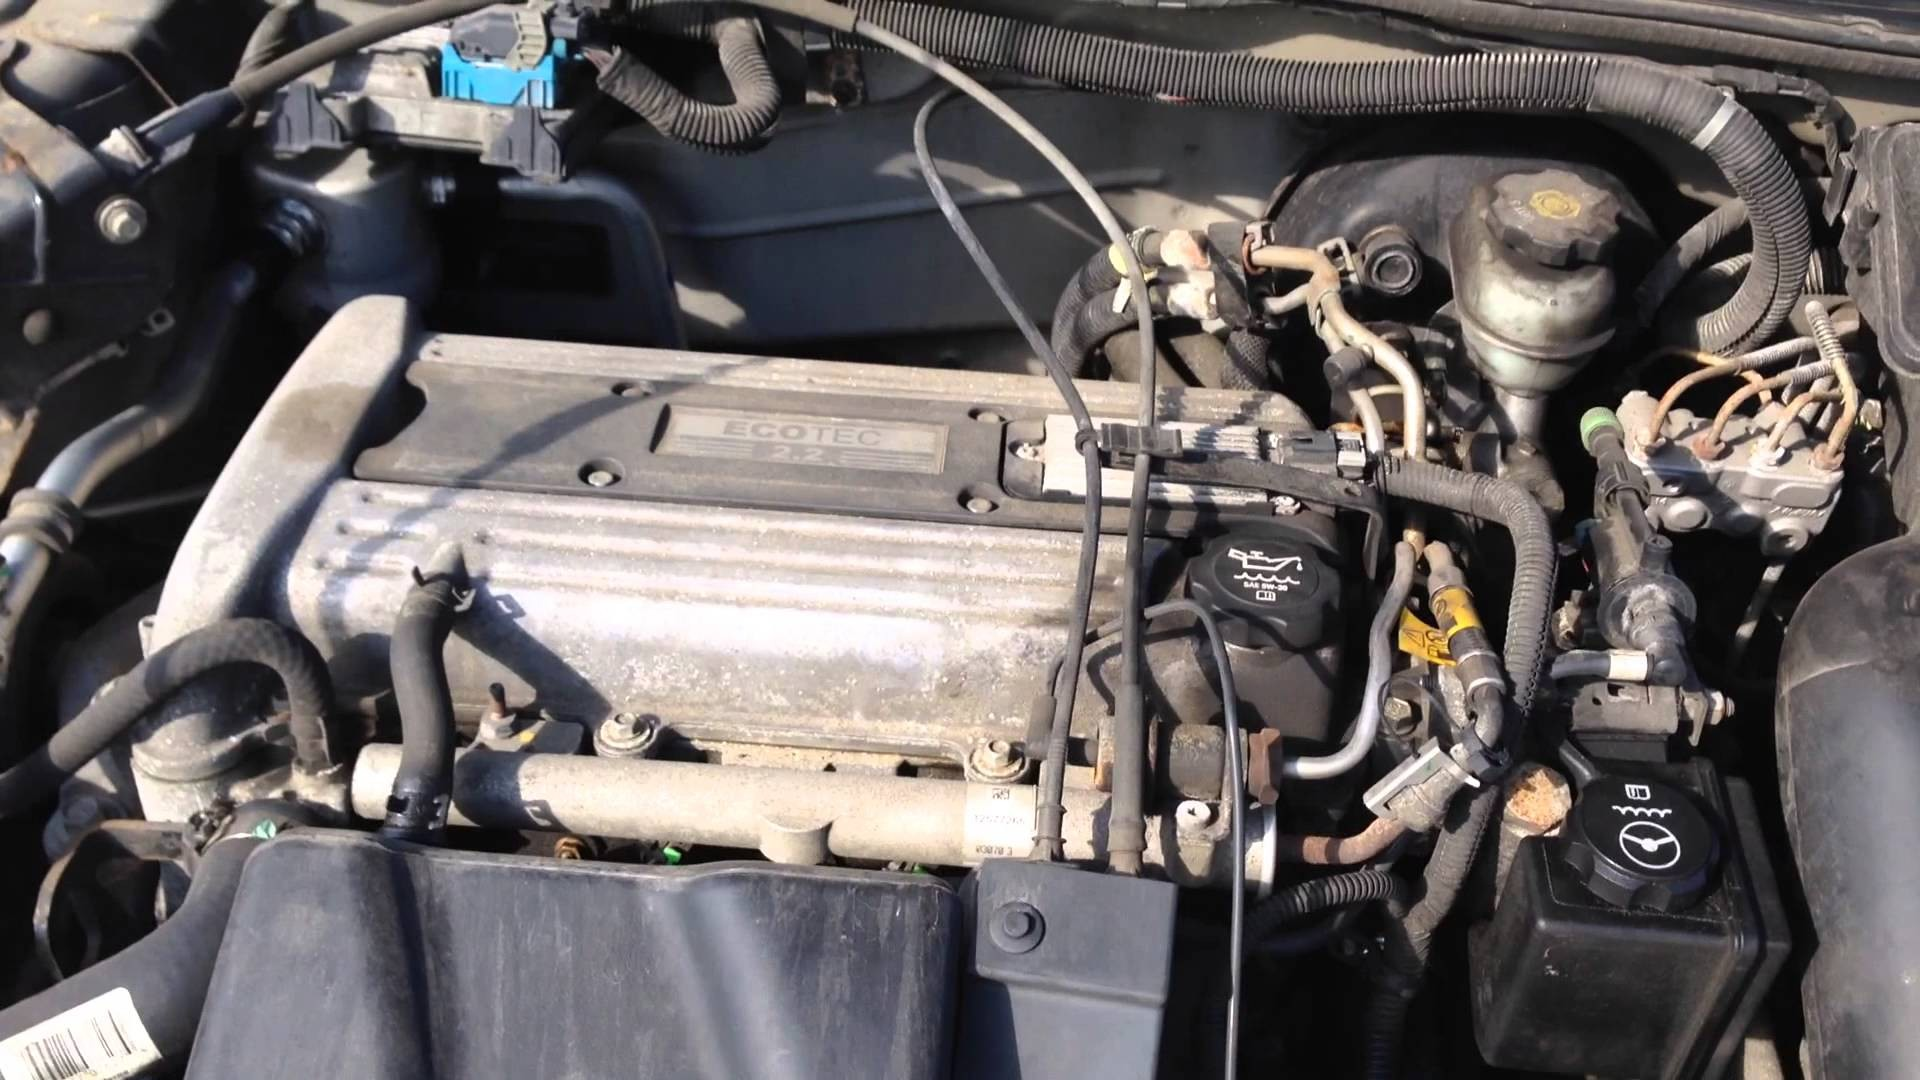 hight resolution of 2 2 ecotec engine diagram 2 e3ce229 2003 chevrolet cavalier 2 2 ecotec engine test of